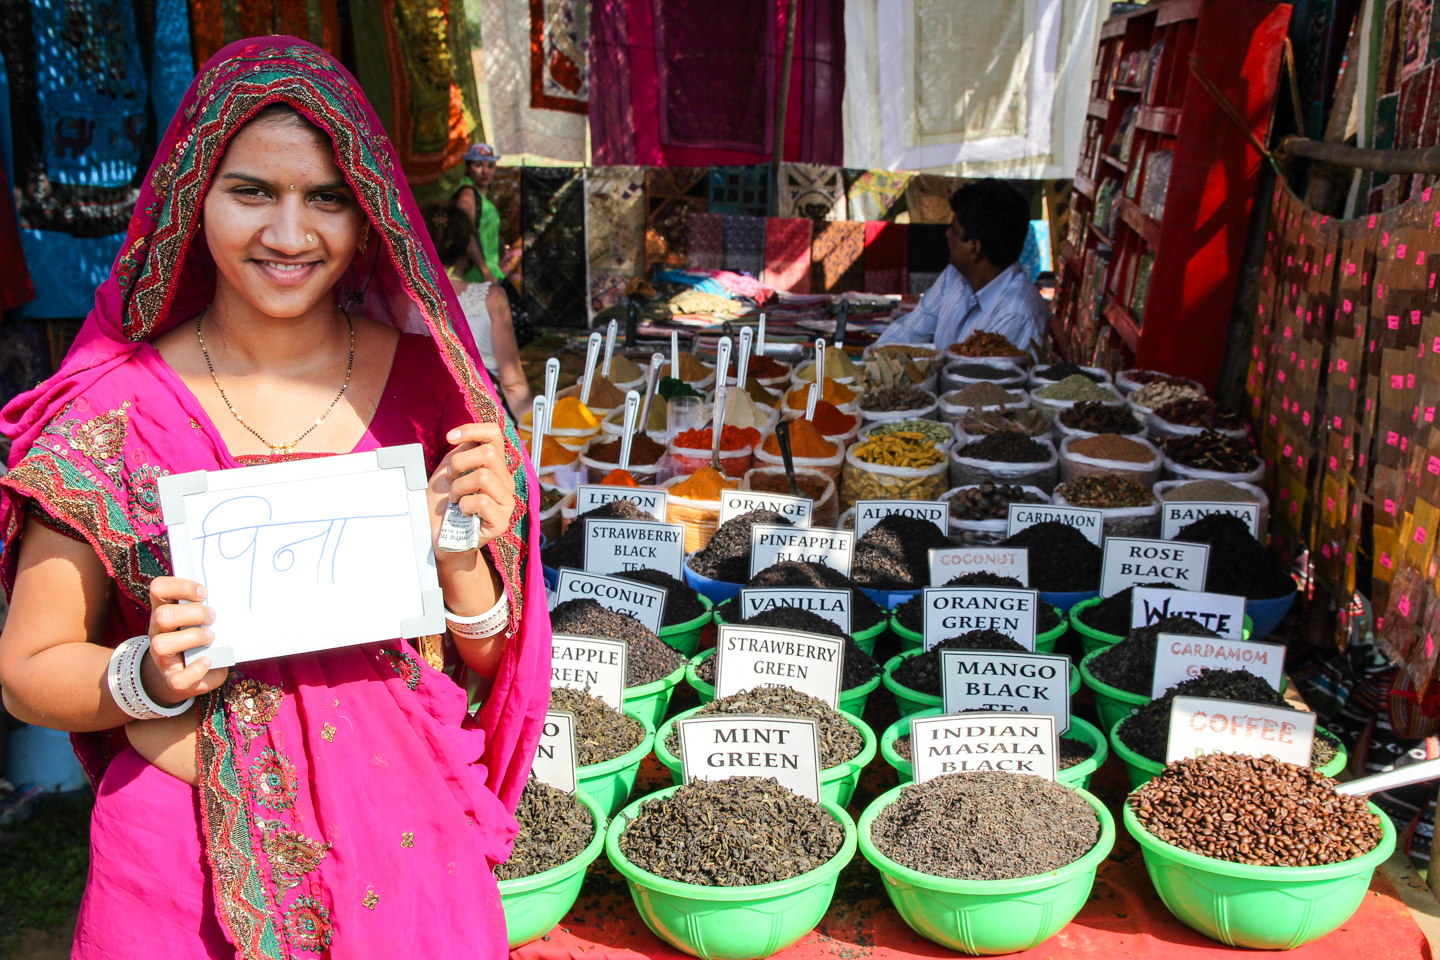 Manju, originally from Gujarat, sells tea and spices at Anjuna Market in Goa. She encourages the tourists who visit her stall to drink green tea for 'health reasons.'